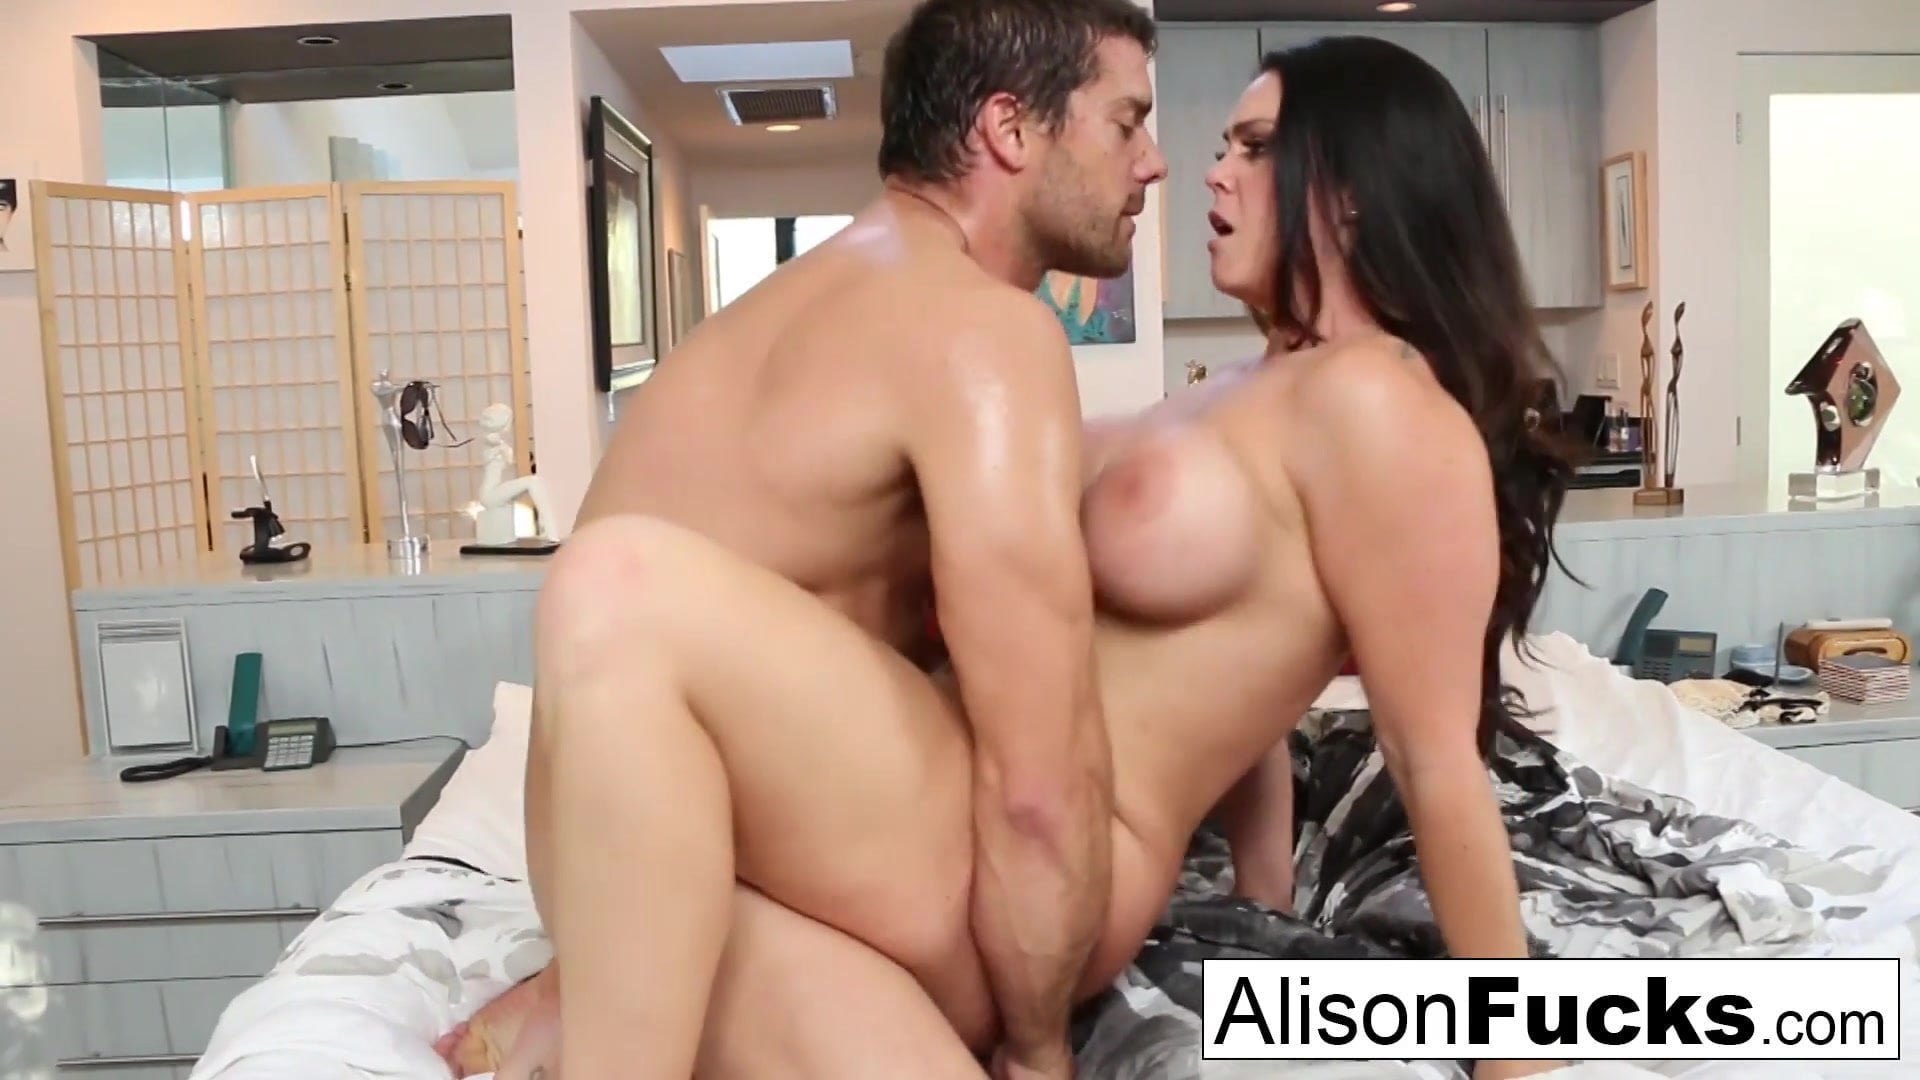 Alison Sex Video amazing rough fuck with alison tyler and a hung spanish stud